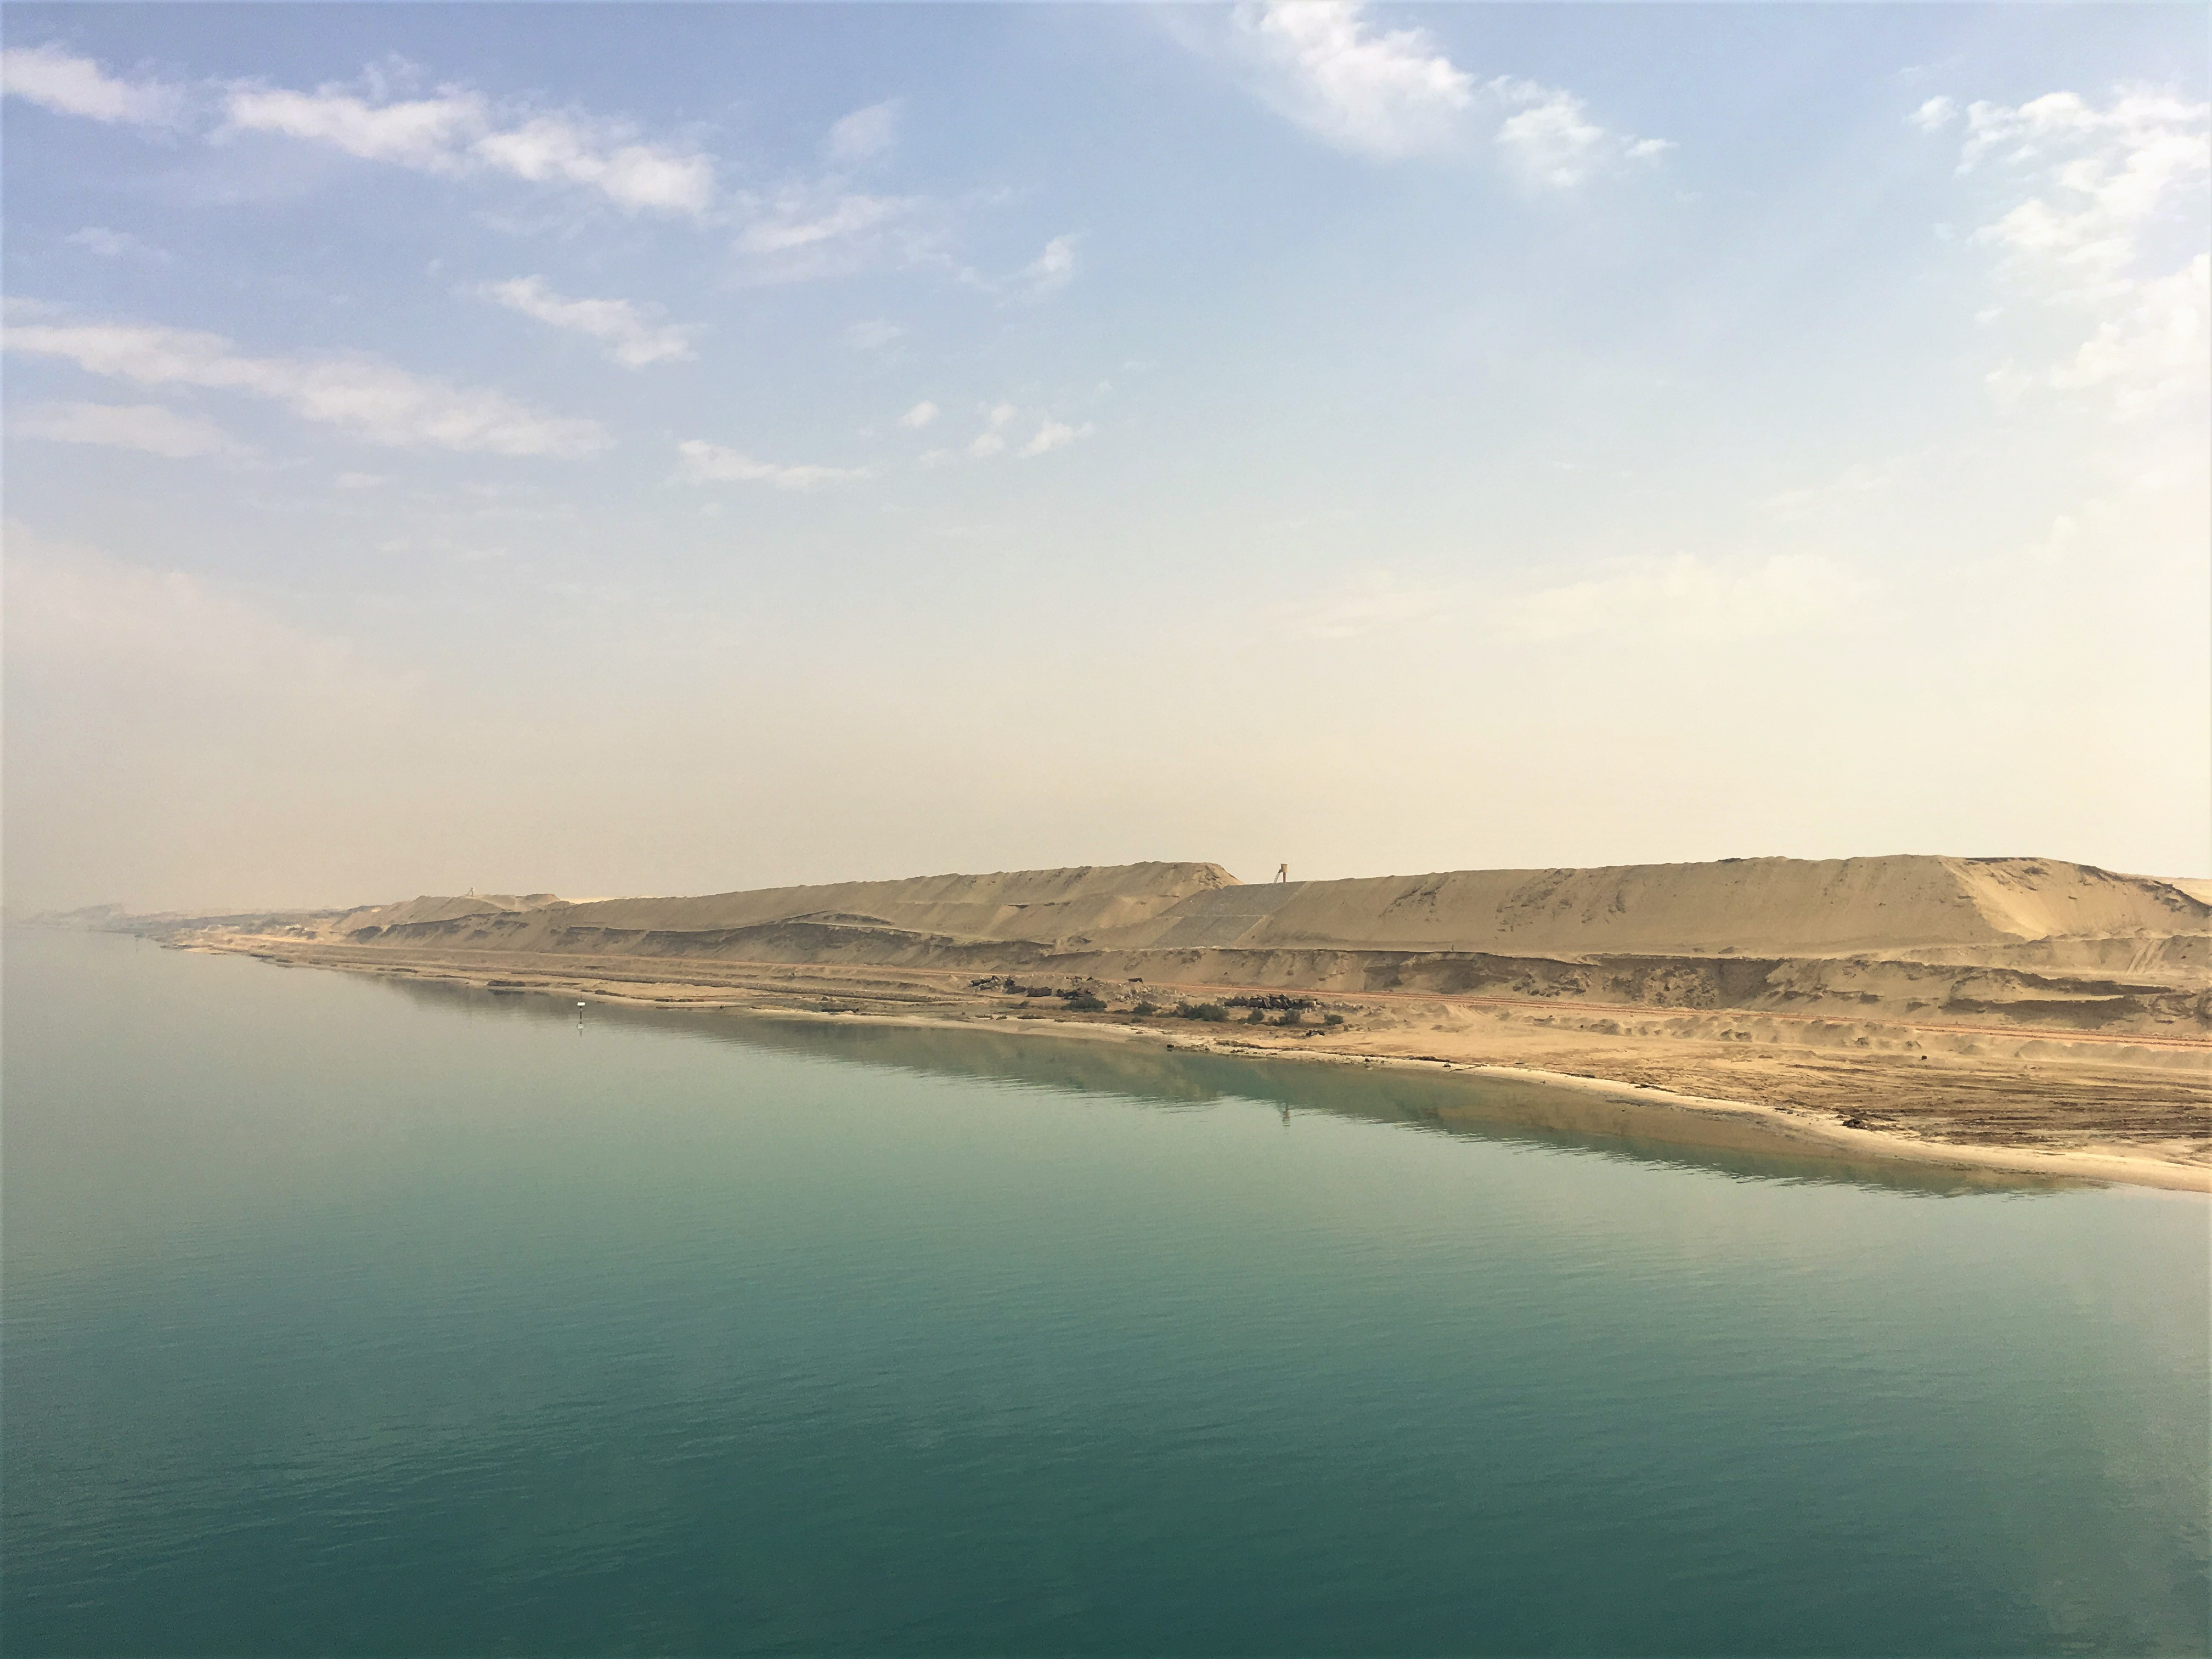 Sailing through the Suez Canal - Lucy Williams Global